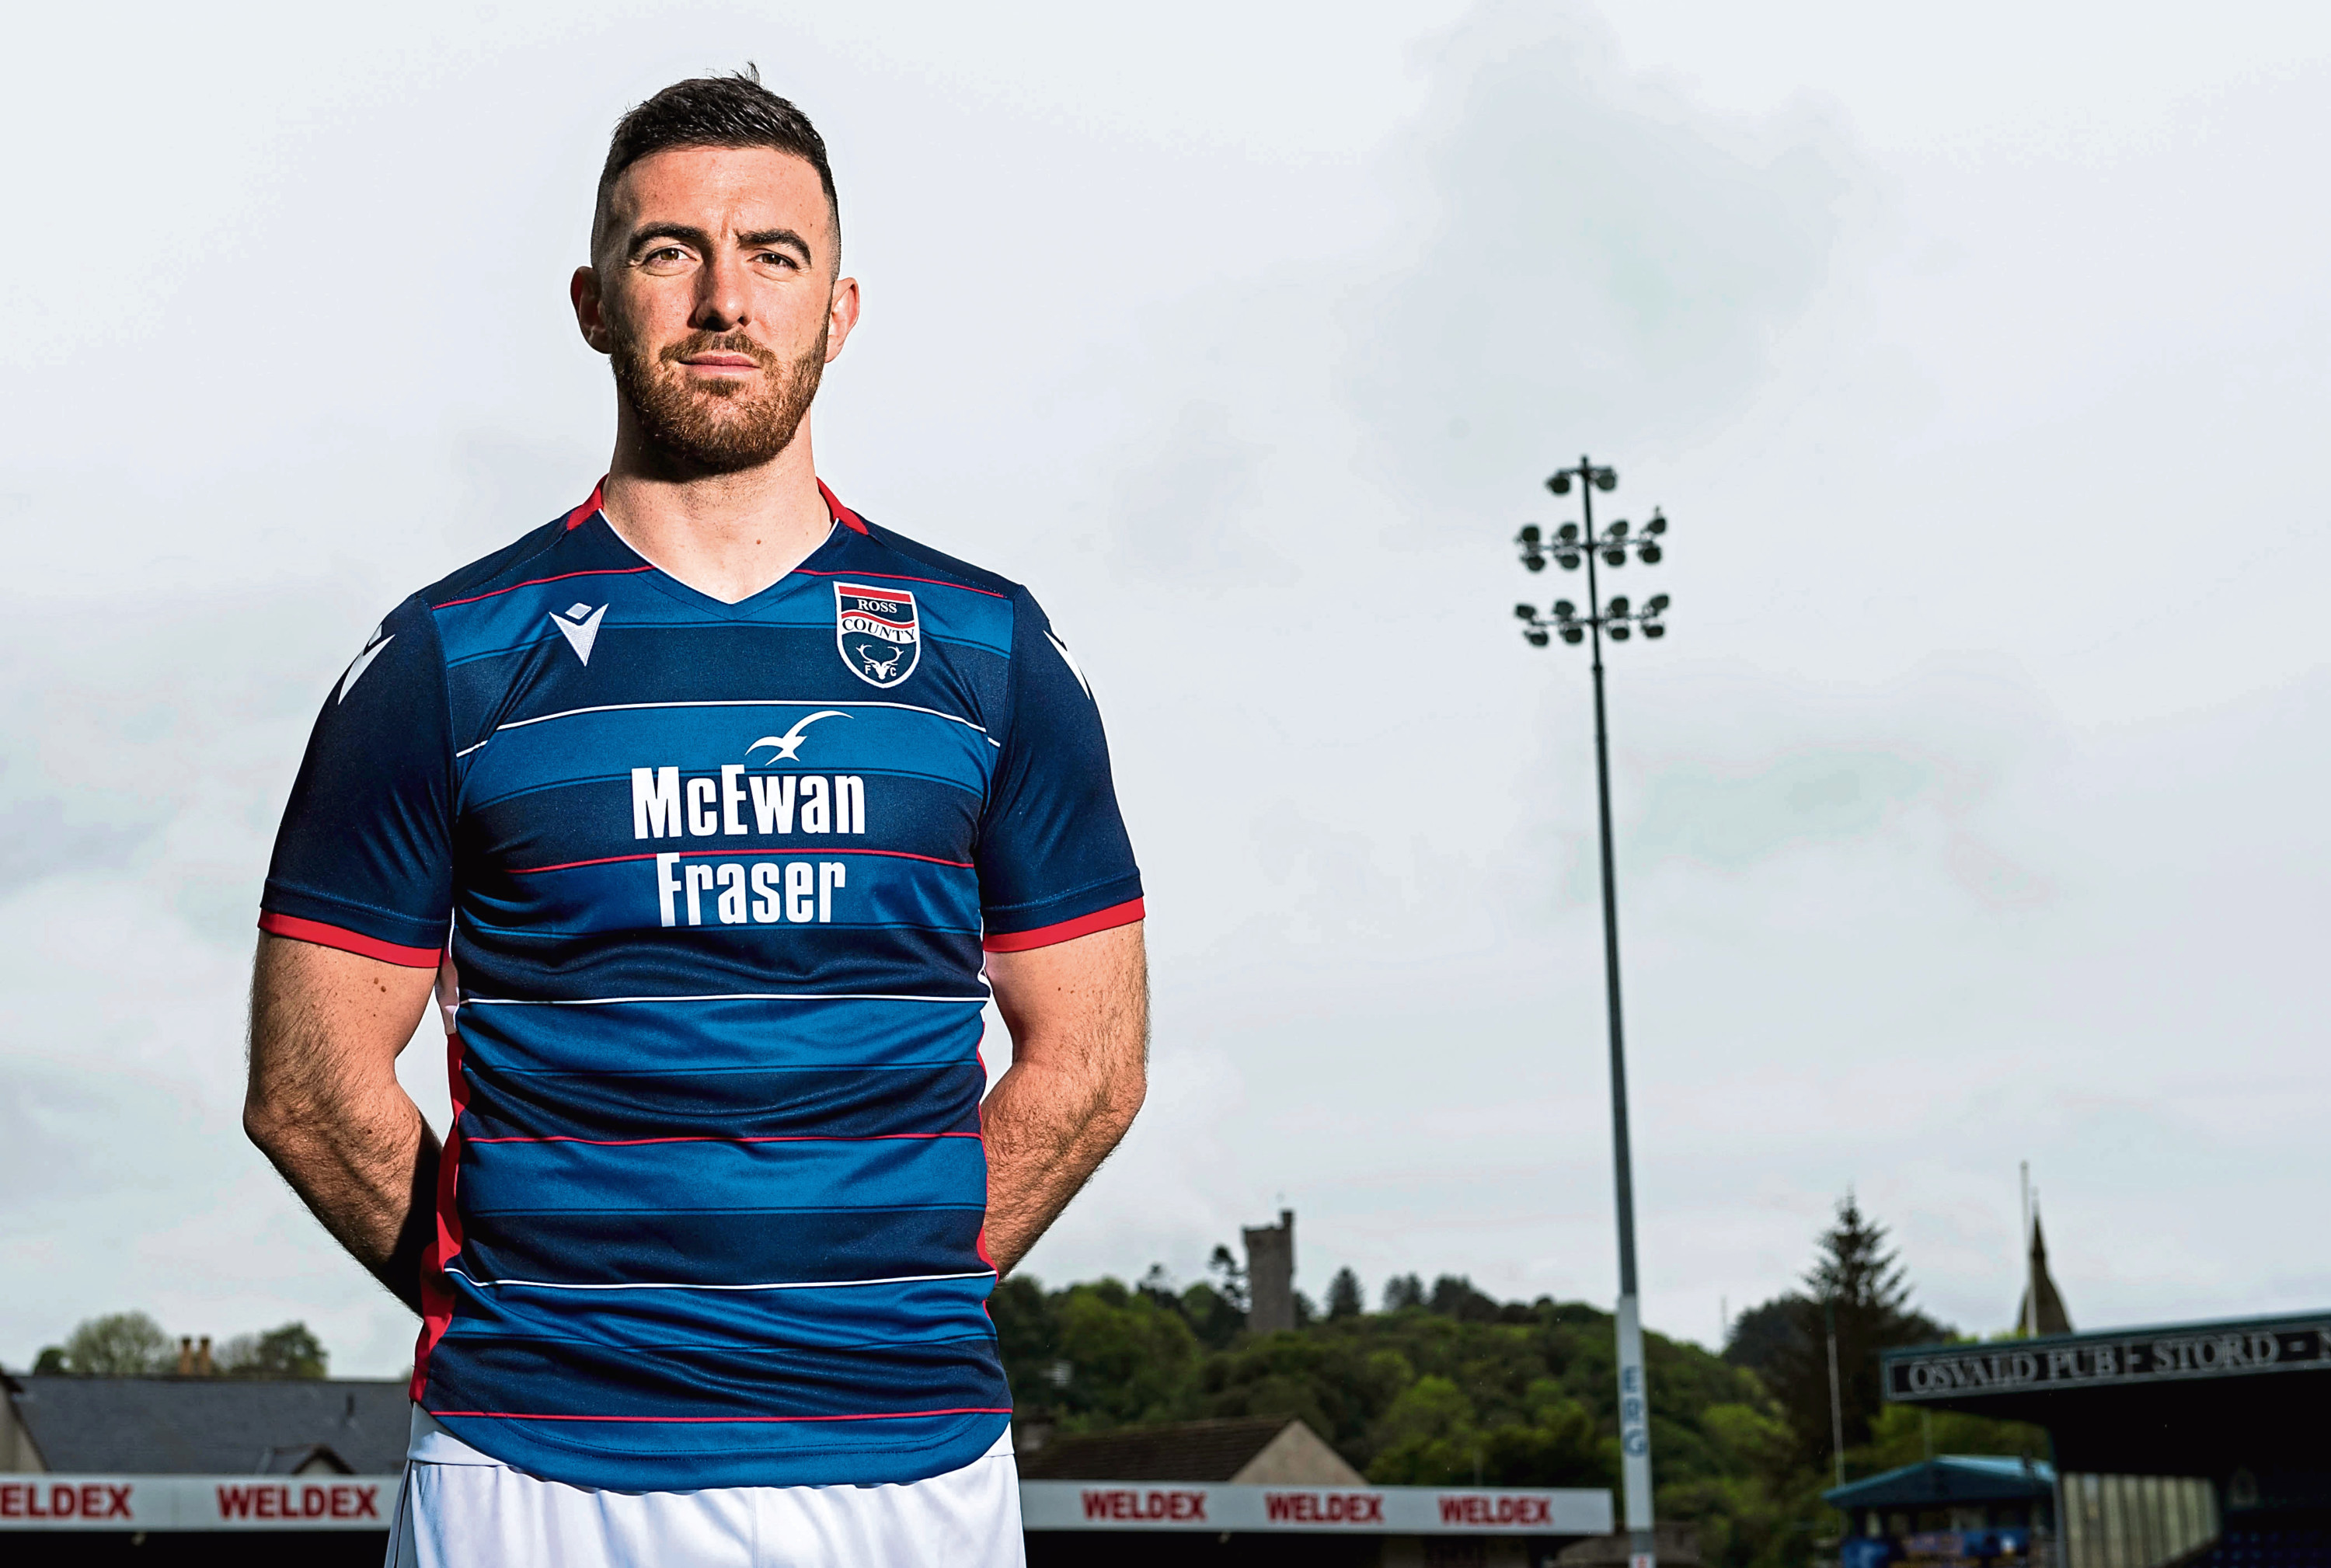 30/05/19 THE GLOBAL ENERGY ARENA - DINGWALL Ross County's Ross Draper models the clubs new 2019/2020 home kit.